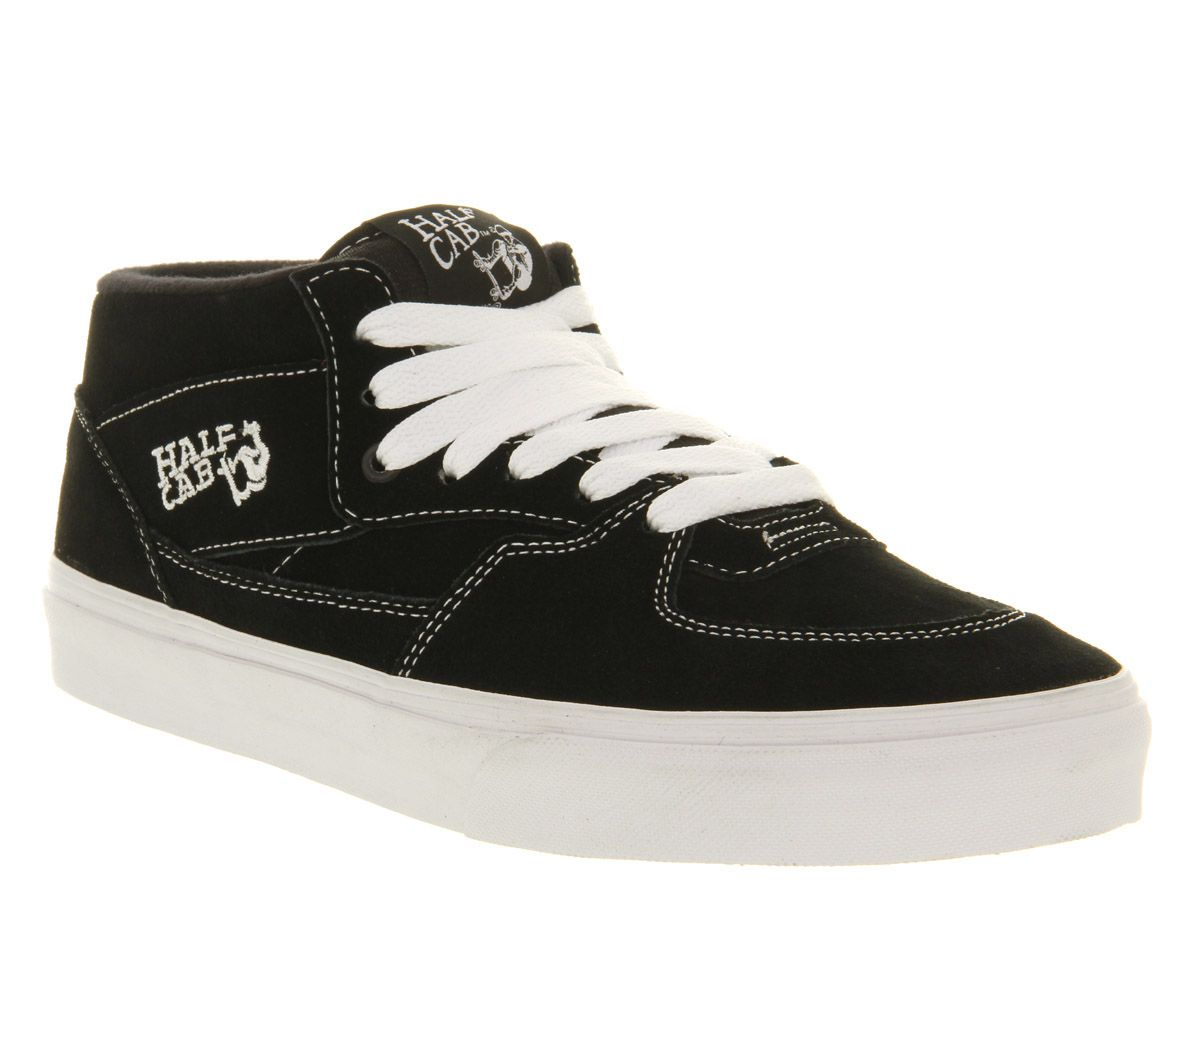 8e96ac7e77b22e Vans Half Cab Black - His trainers